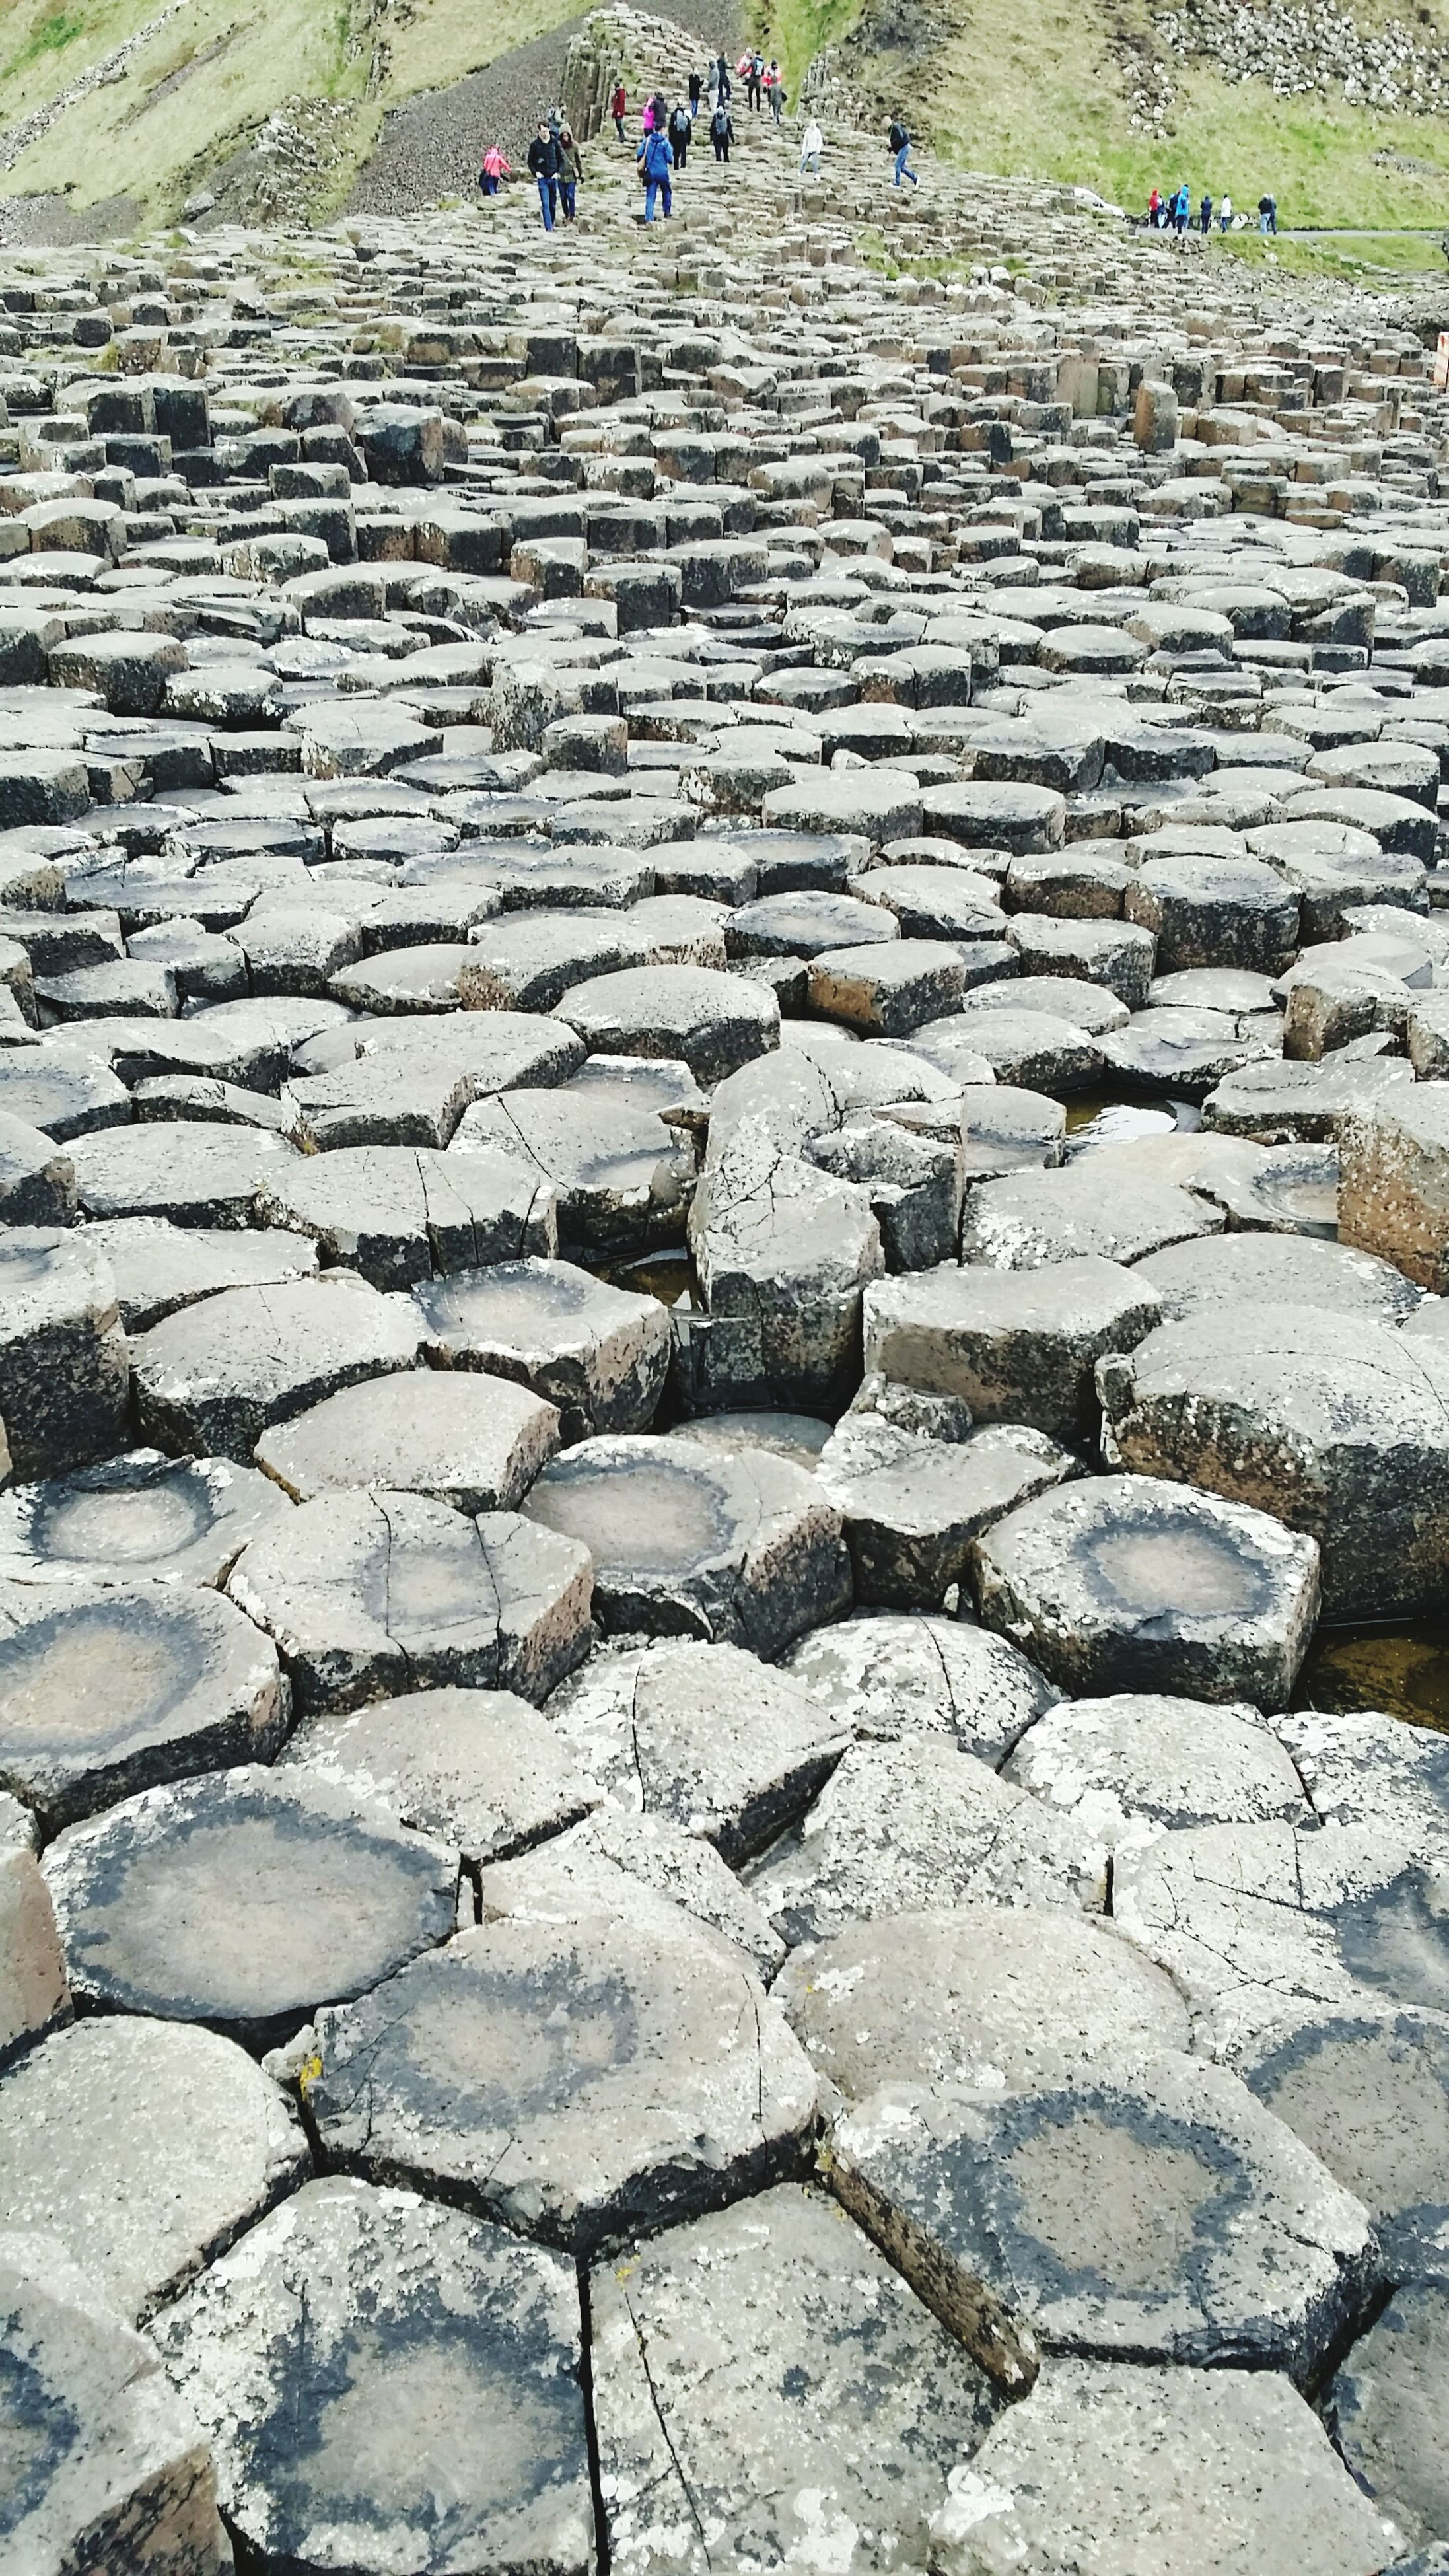 cobblestone, paving stone, stone wall, stone - object, high angle view, stone material, footpath, pattern, street, stone, day, outdoors, rock - object, built structure, sunlight, architecture, steps, pavement, building exterior